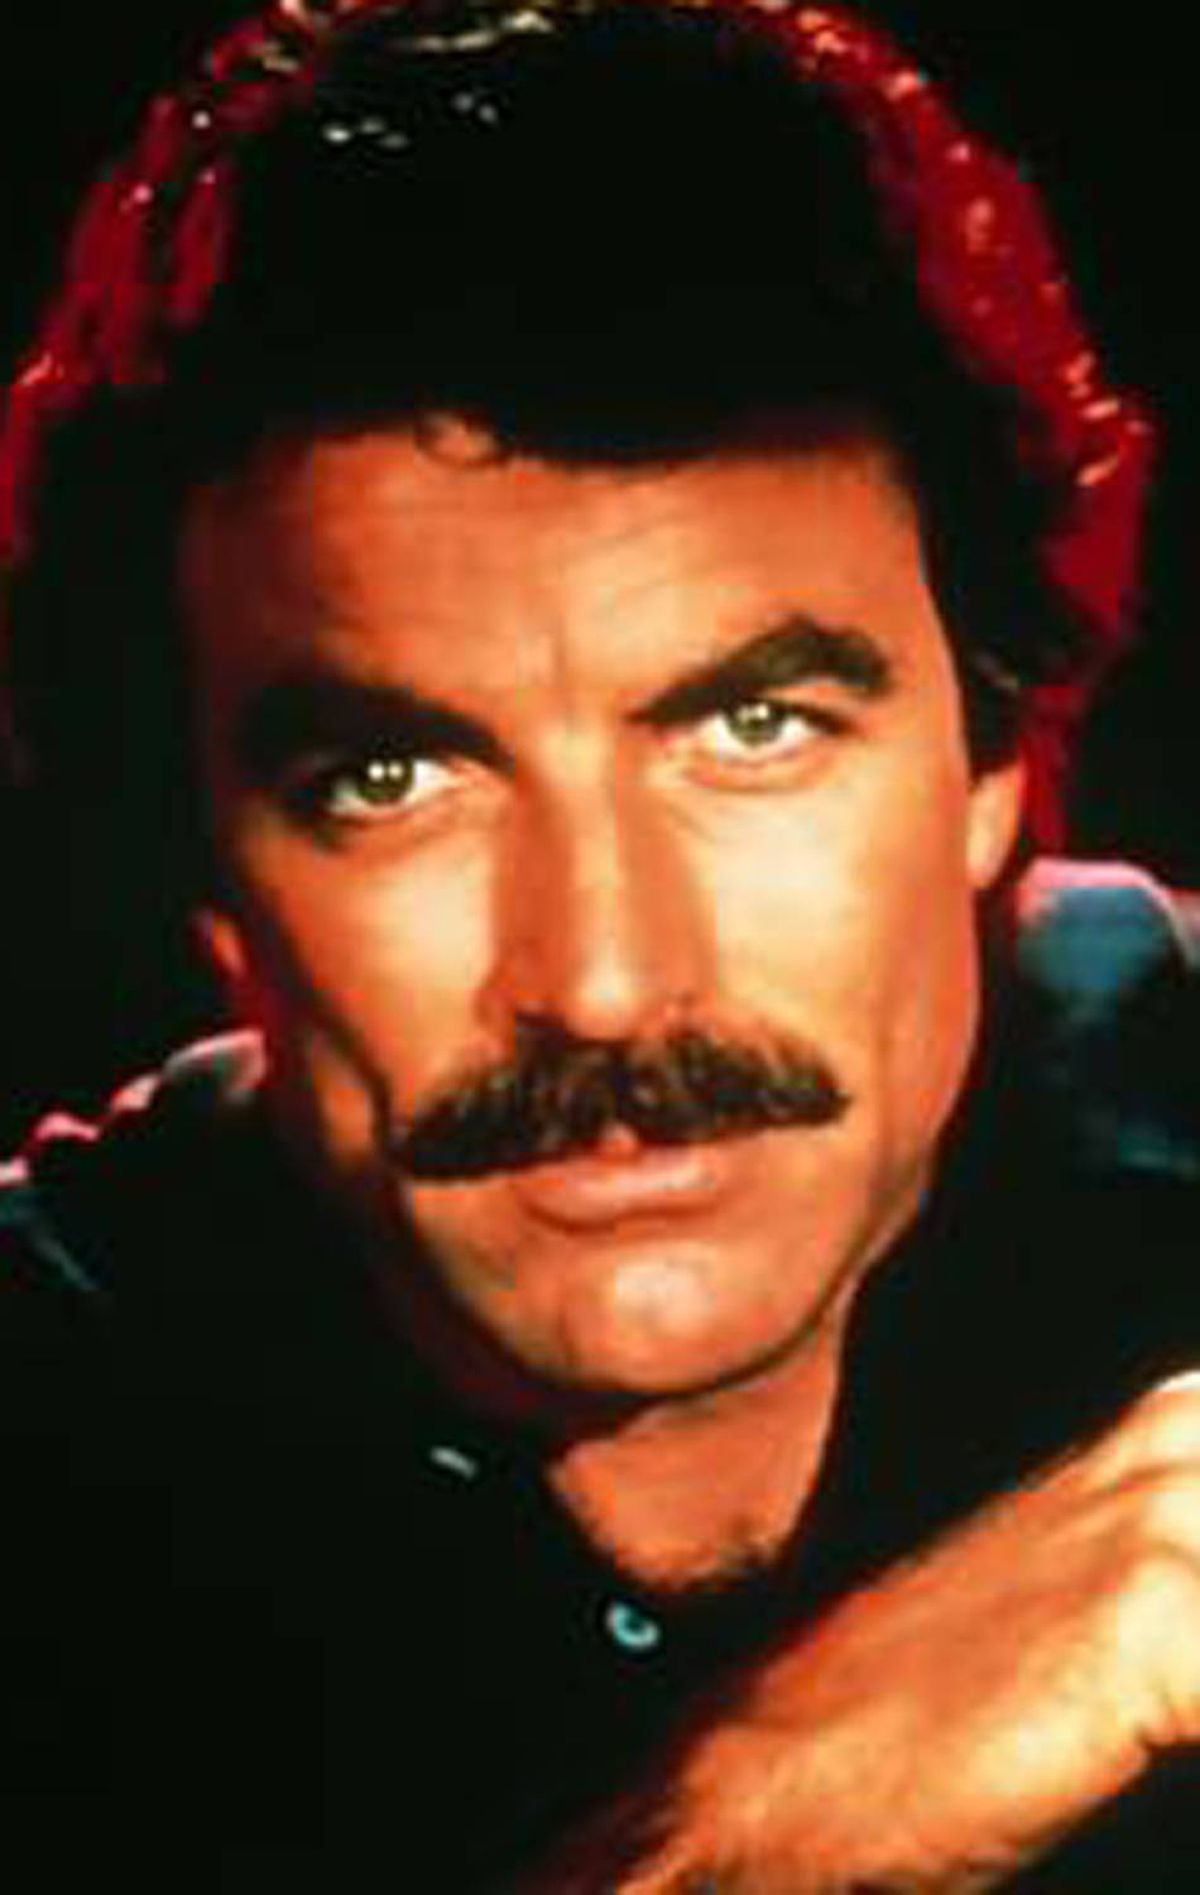 1. MAGNUM PI Oh, like you're surprised. The Hawaii-based private investigator and ultimate ladies man is awarded this elite prize. Tom Selleck is one of the few men who can proudly say they look better avec stache. (Seriously, have you seen him clean-shaven? We find ourselves pleading with the TV screen. Wear the stache, Tom, and don't ever take it off.)